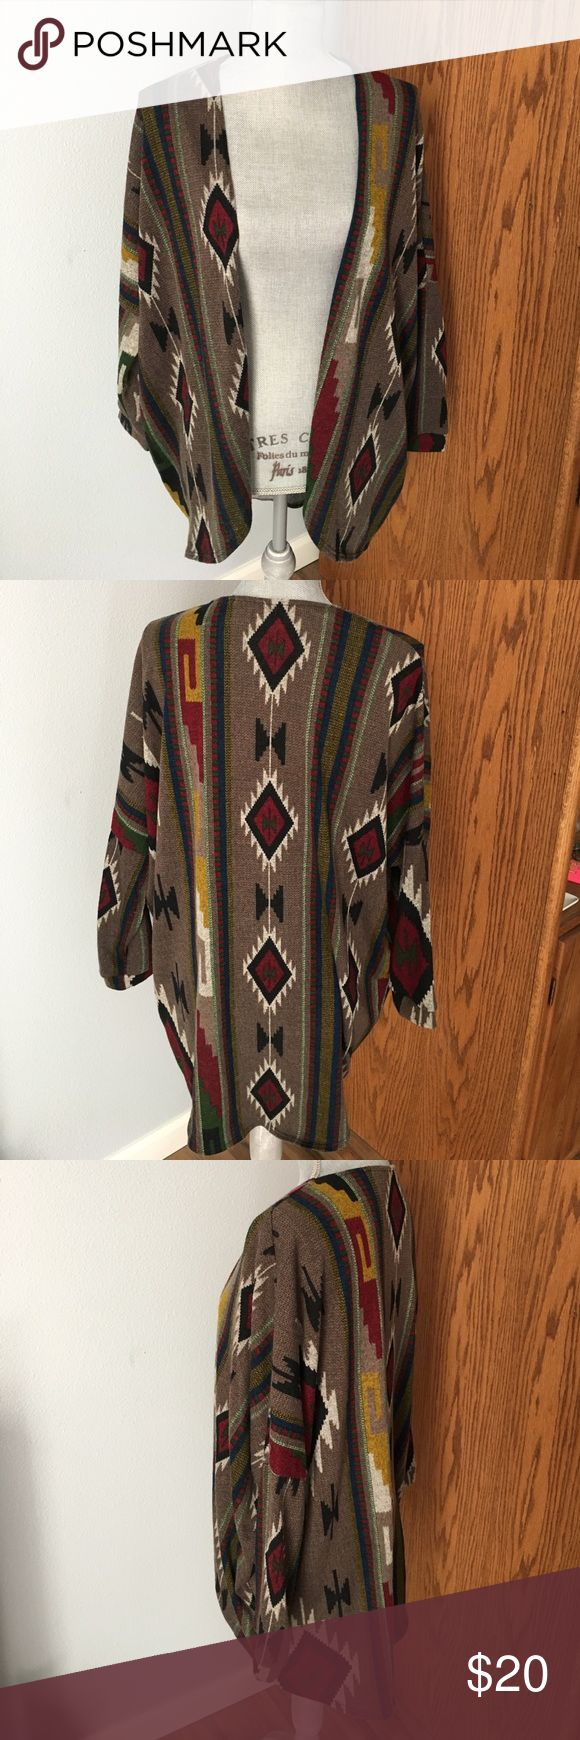 🚨BOGO SALE! Aztec print cardigan 3/4 length sleeves, EUC. Tag has been cut out because it was very itchy 😅 but fits a size XS/S. Jackets & Coats